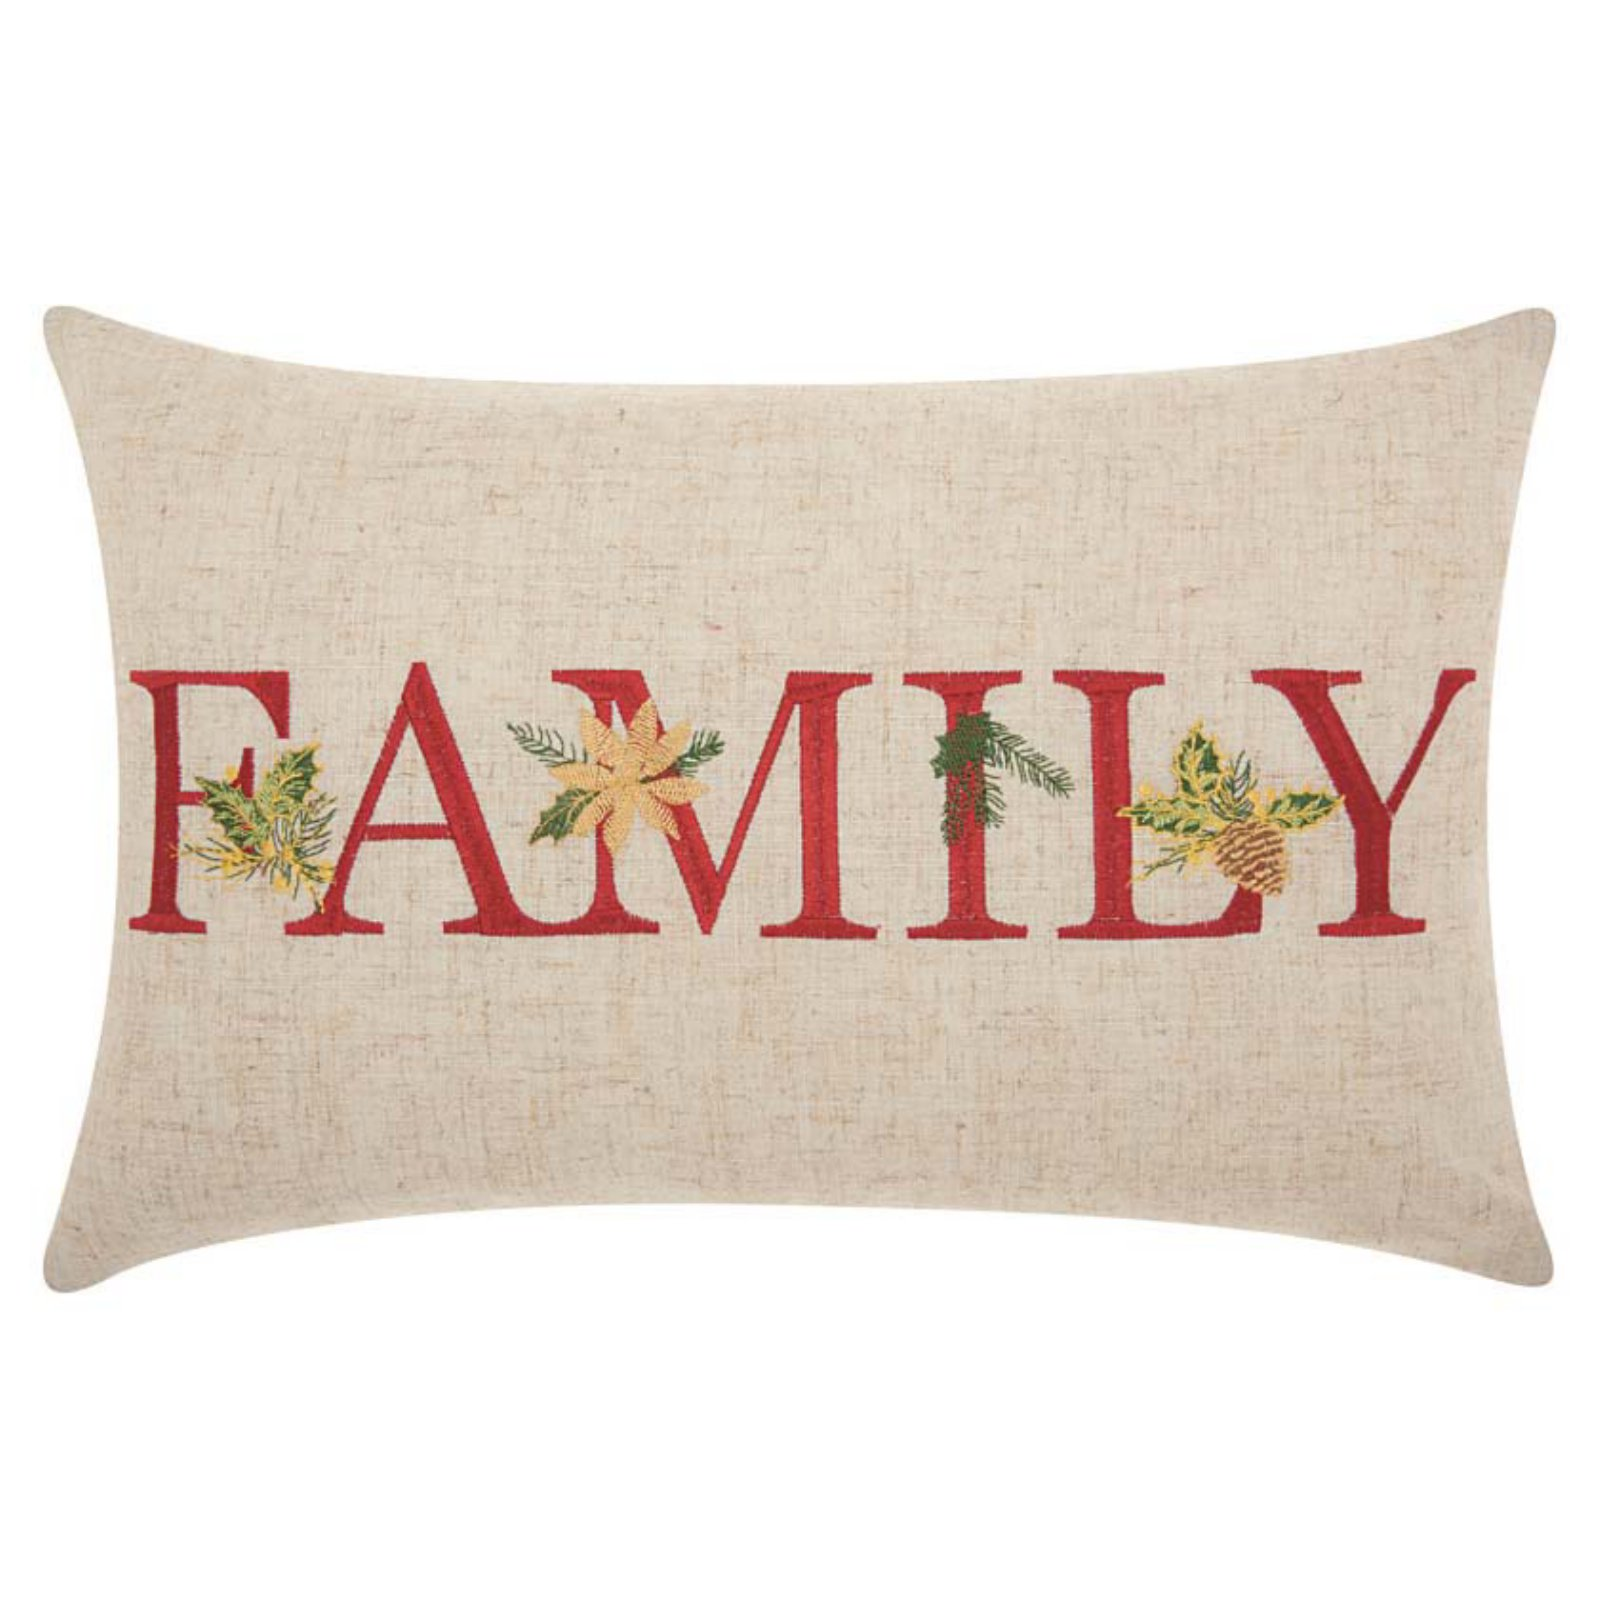 Nourison Home For The Holiday Family Holiday Throw Pillow, Natural by Nourison